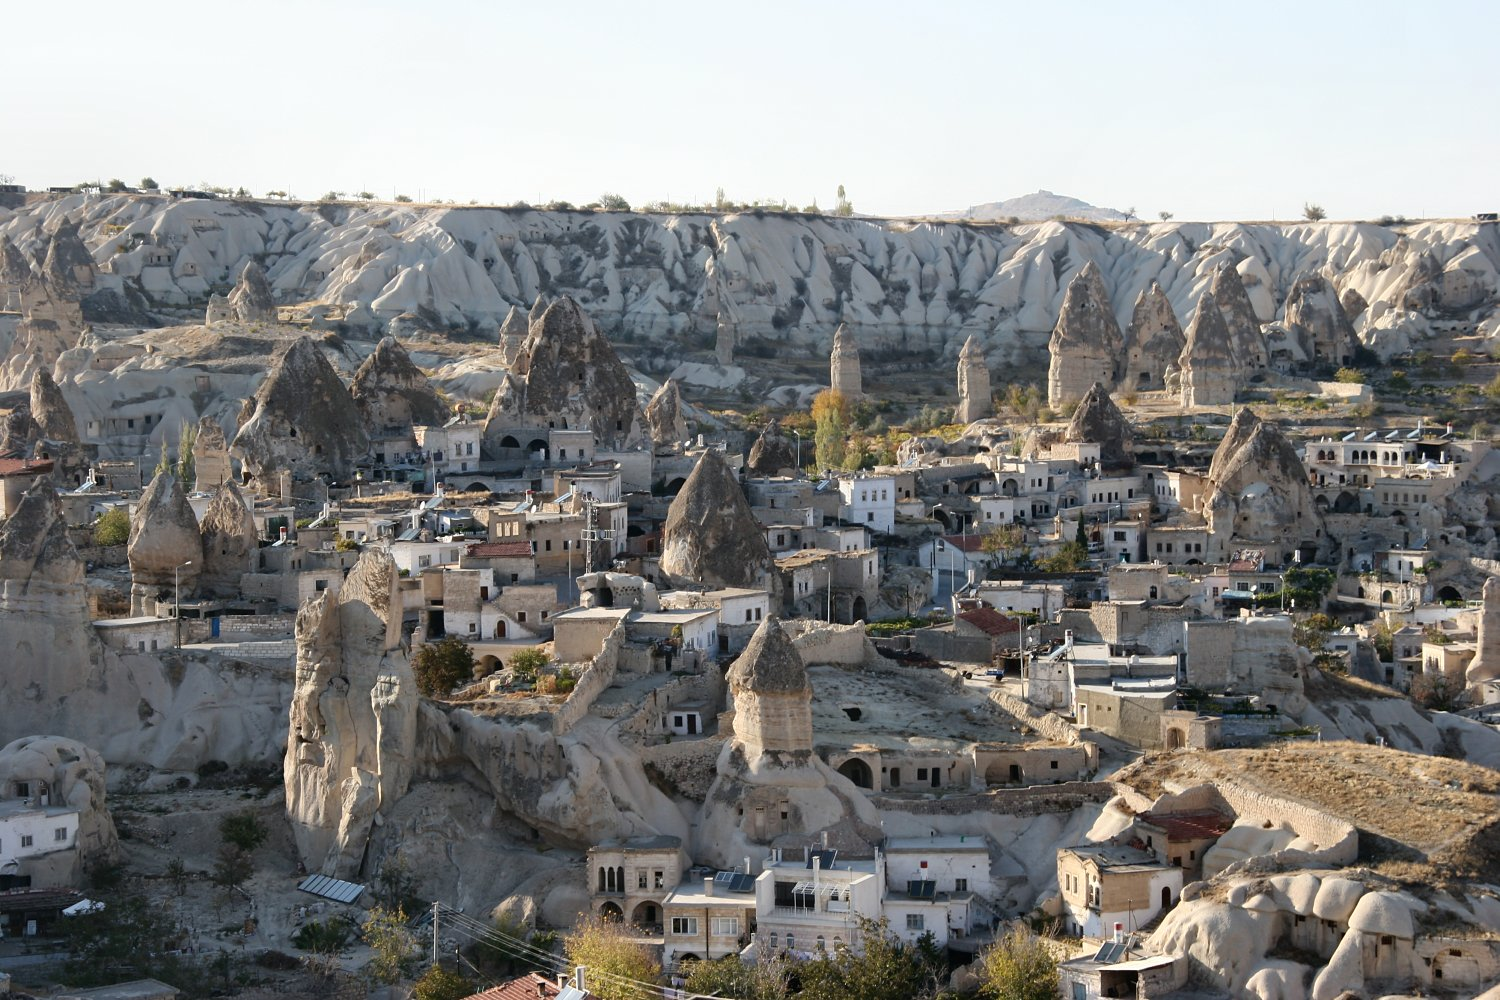 File:Göreme 1 11 2004.jpg - Wikimedia Commons